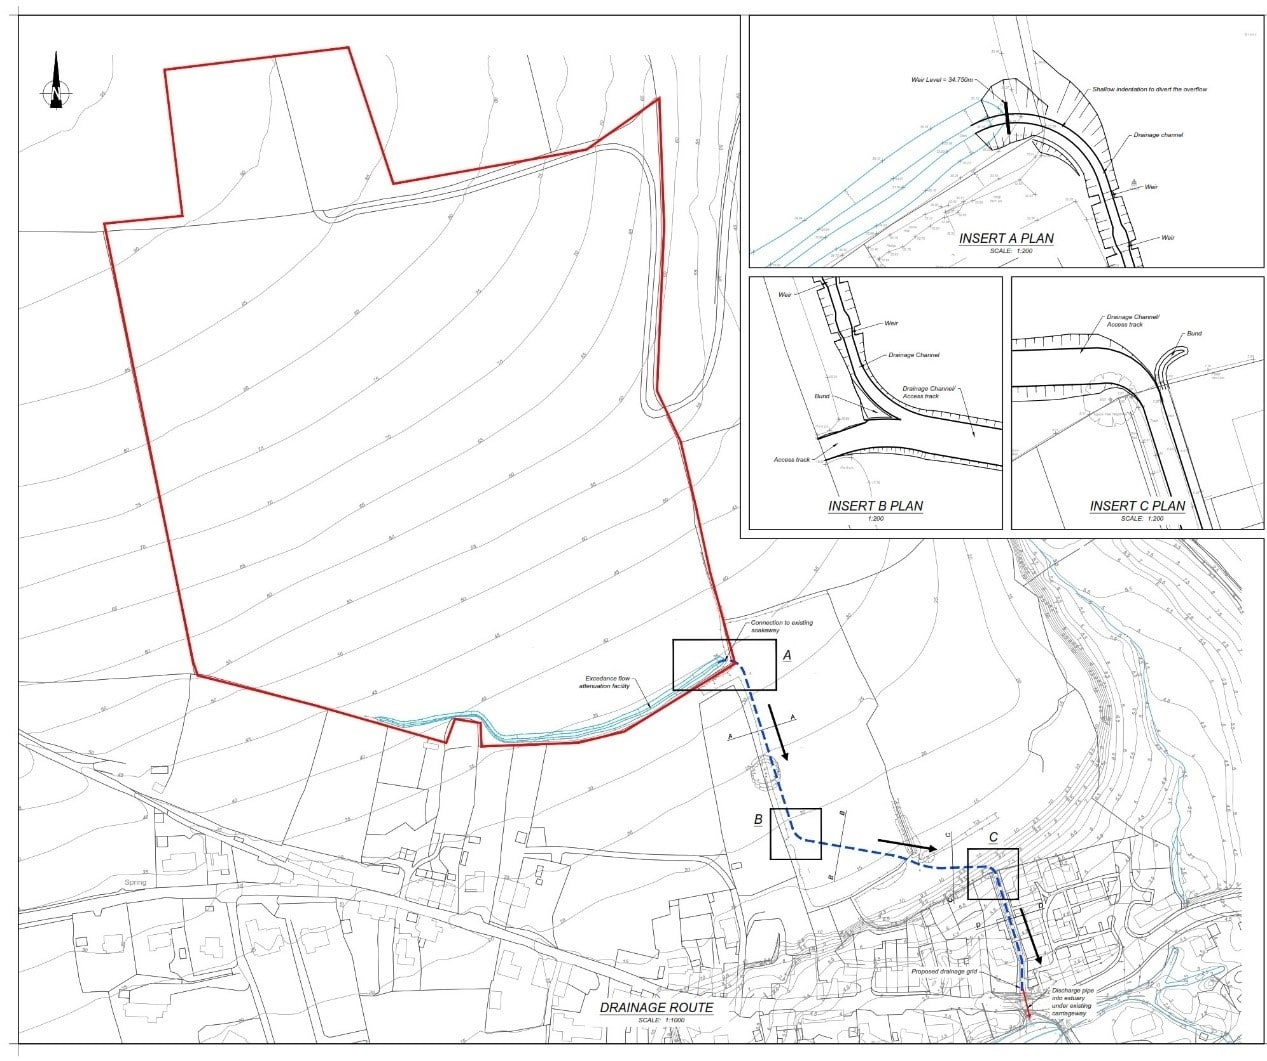 Map showing proposed works in Frogmore